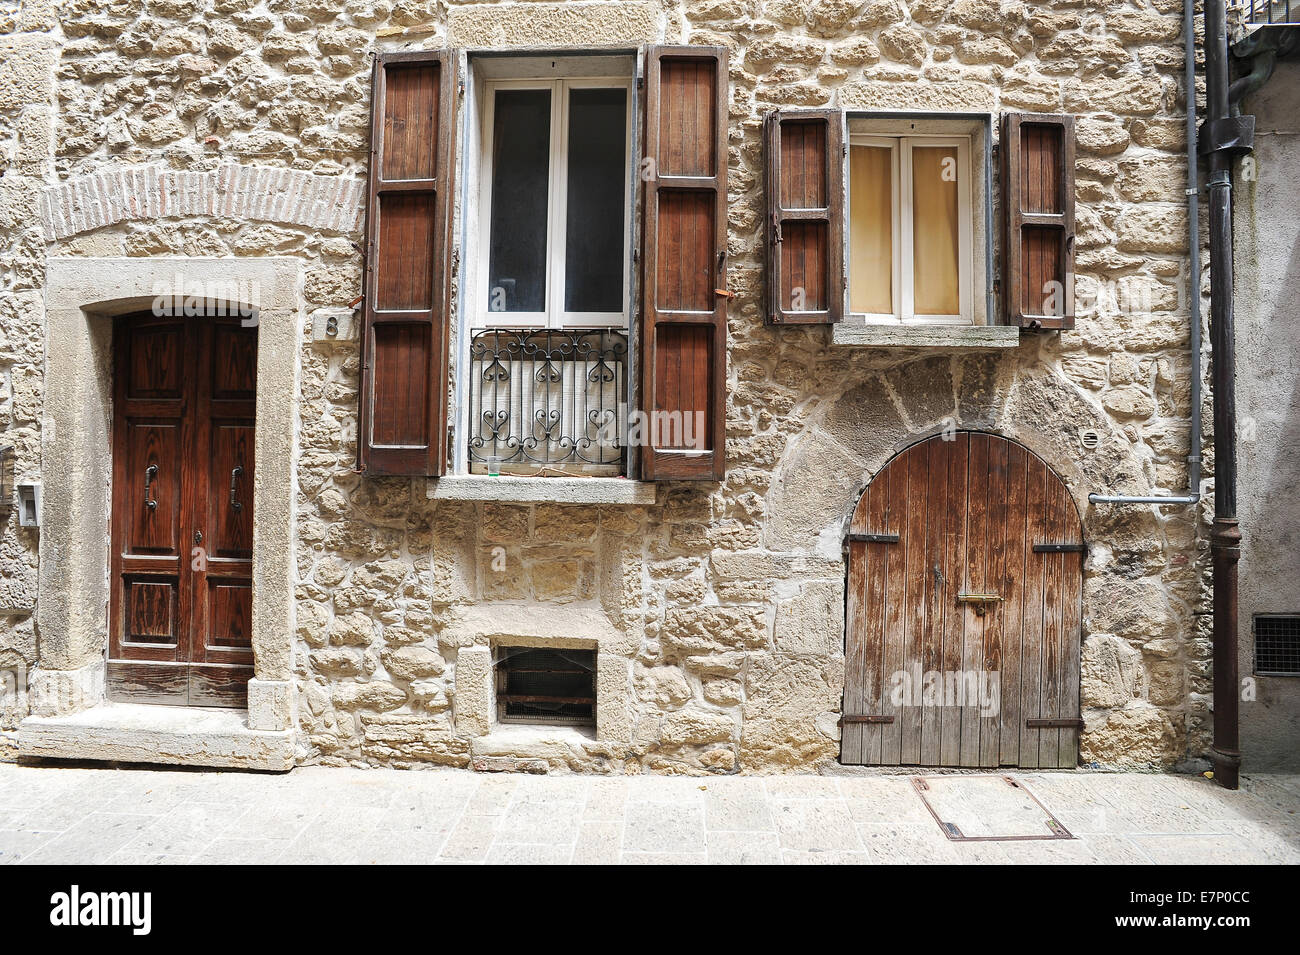 955 #684634  District Door Europe European Exterior Facade Front House Hou wallpaper European Front Doors 46251300